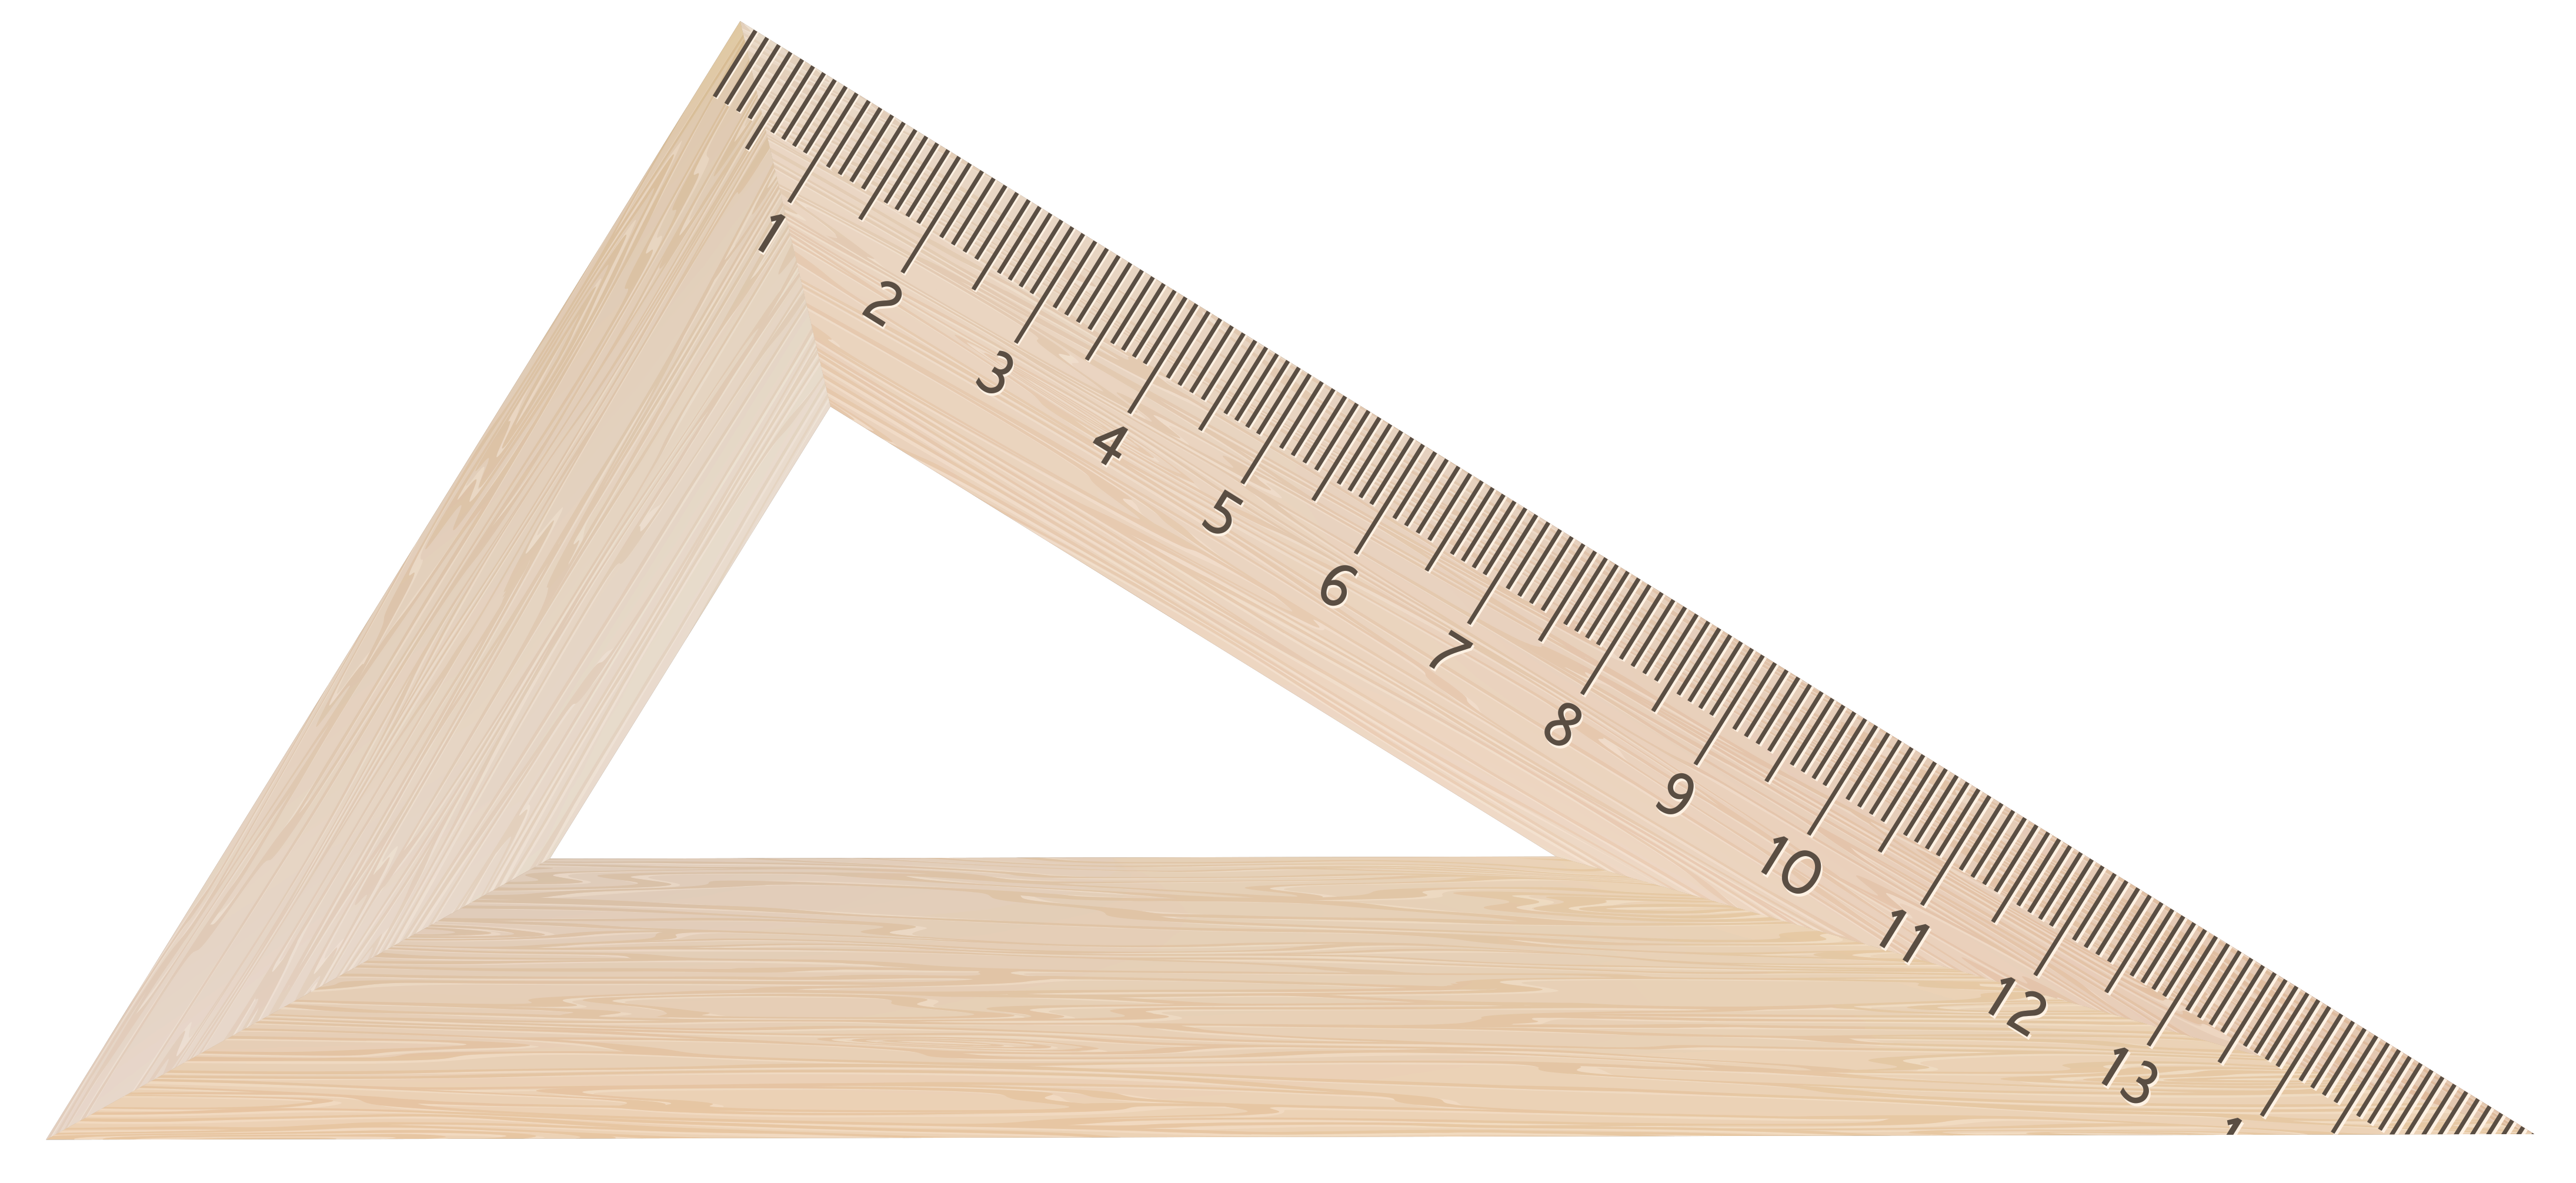 Clipart ruler rectangle. Wooden square png image